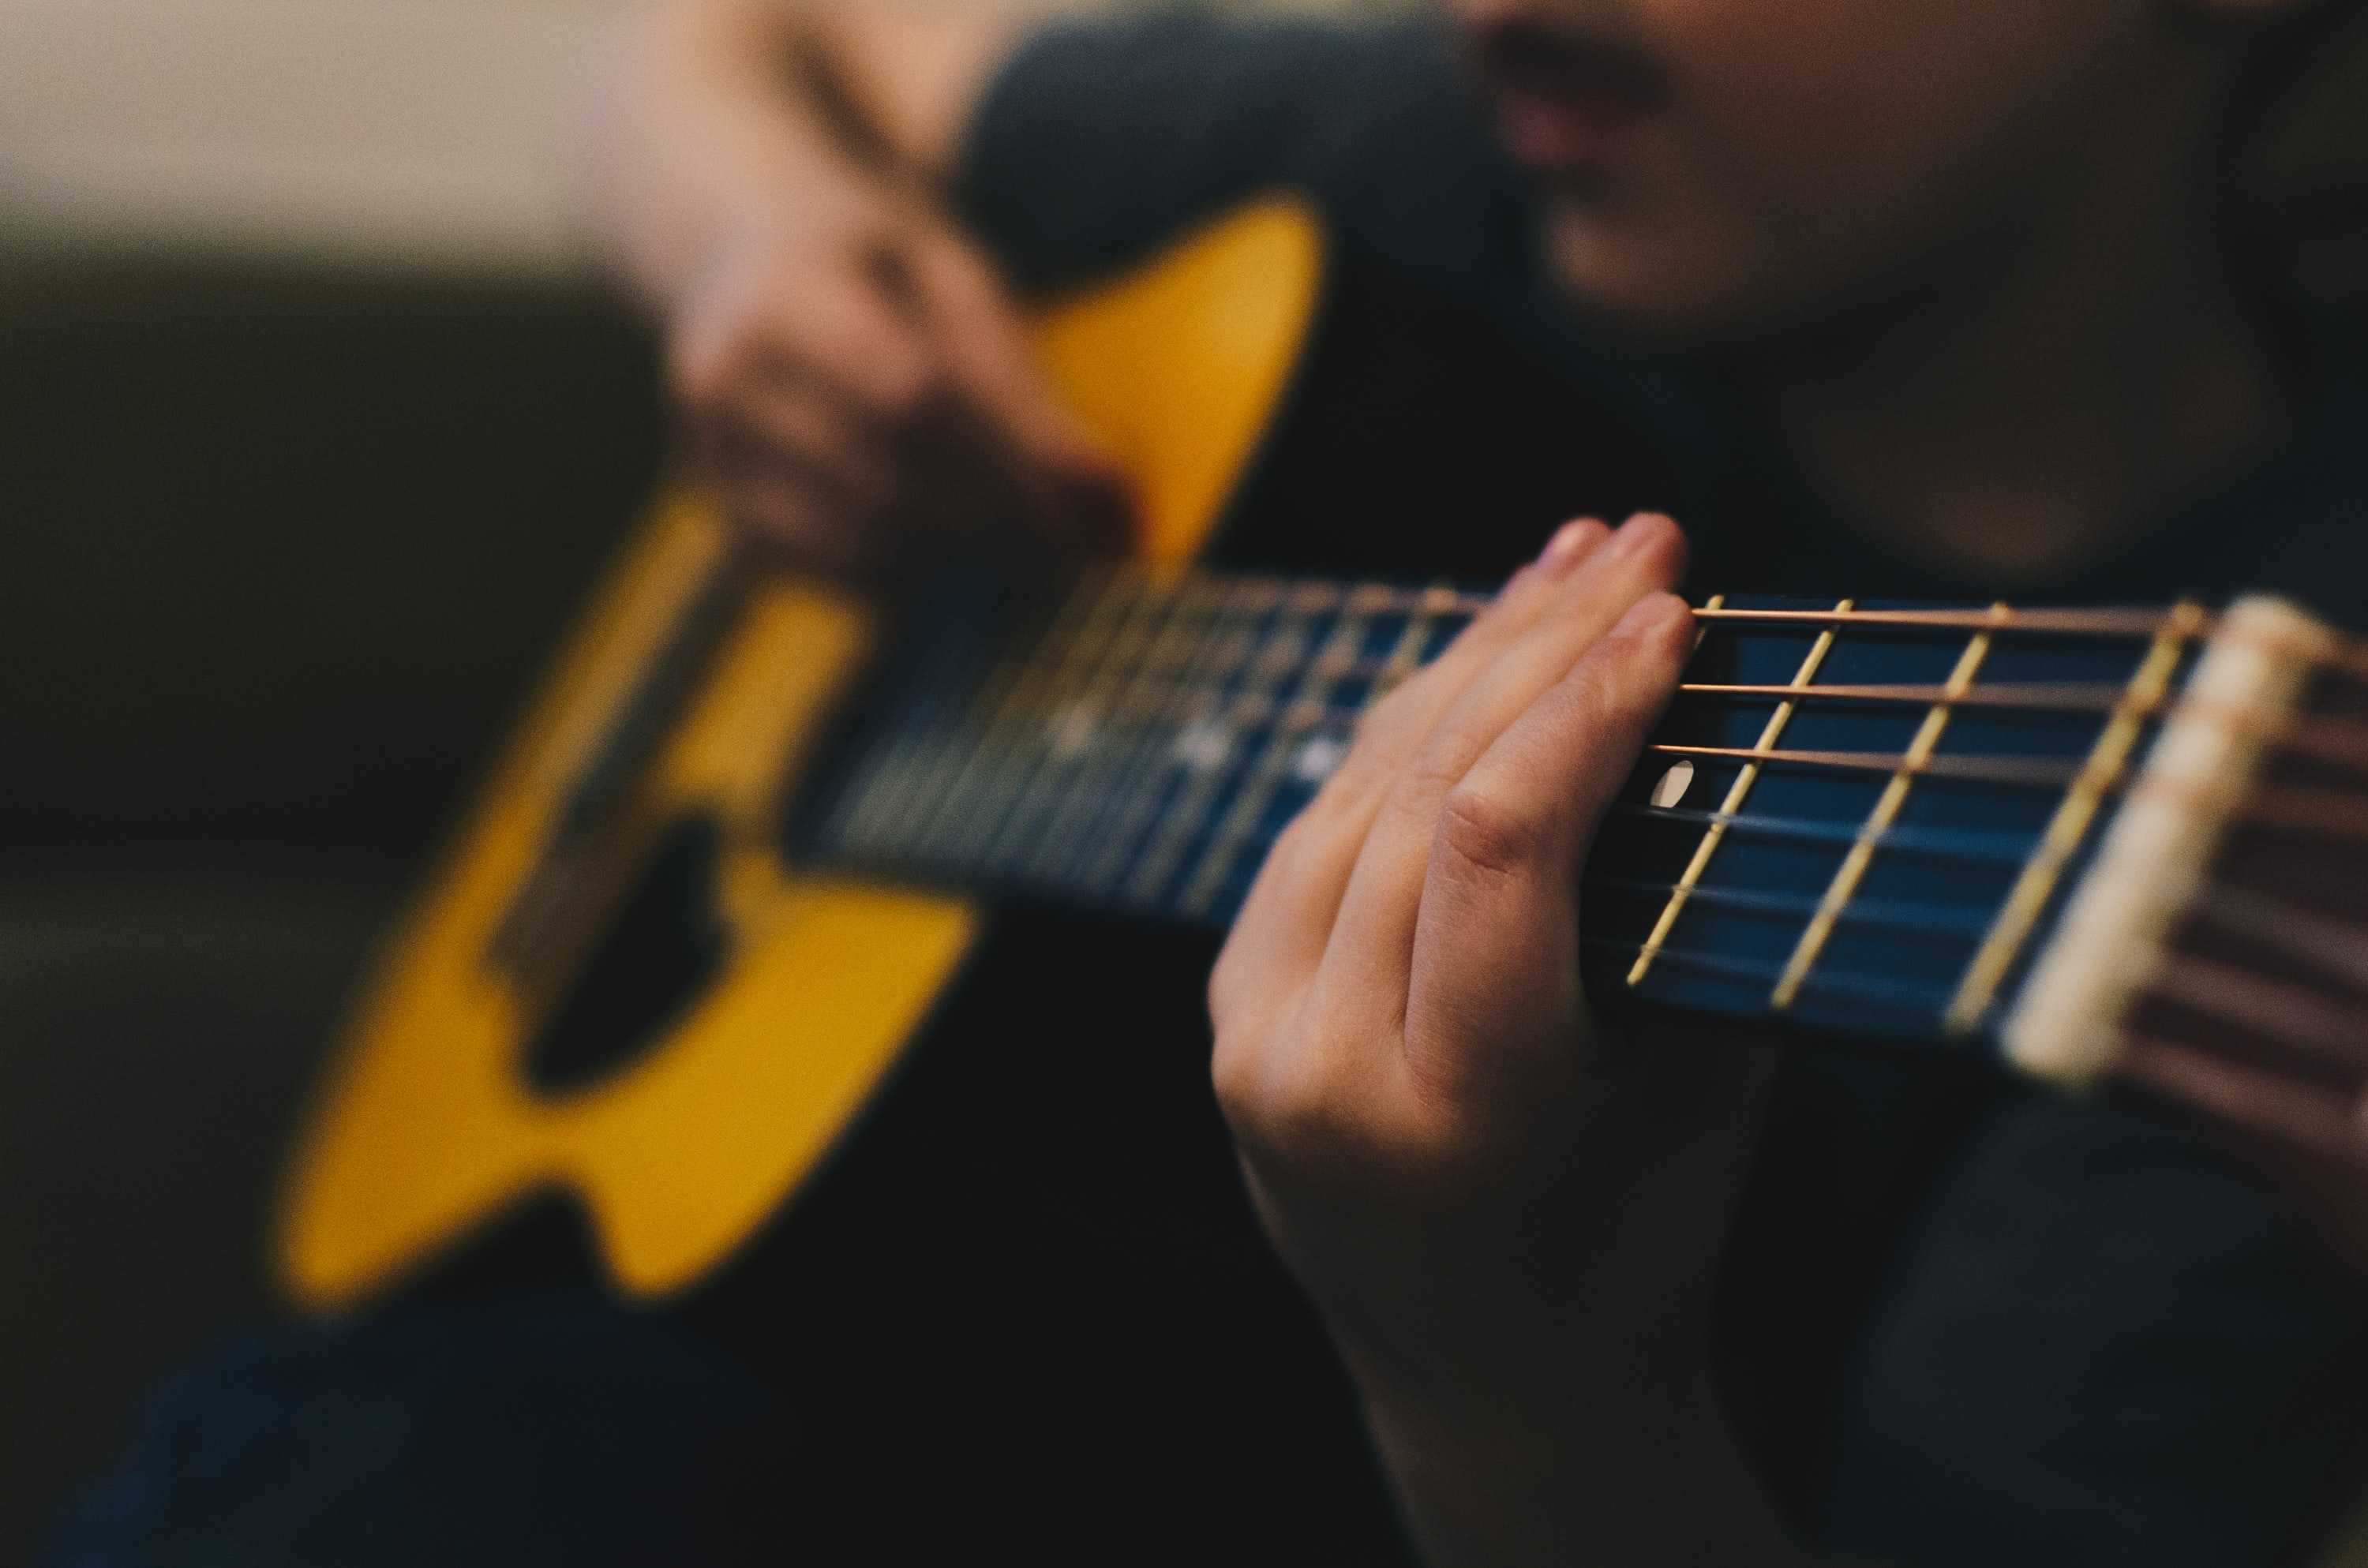 A fuzzy shot of a man playing an acoustic guitar